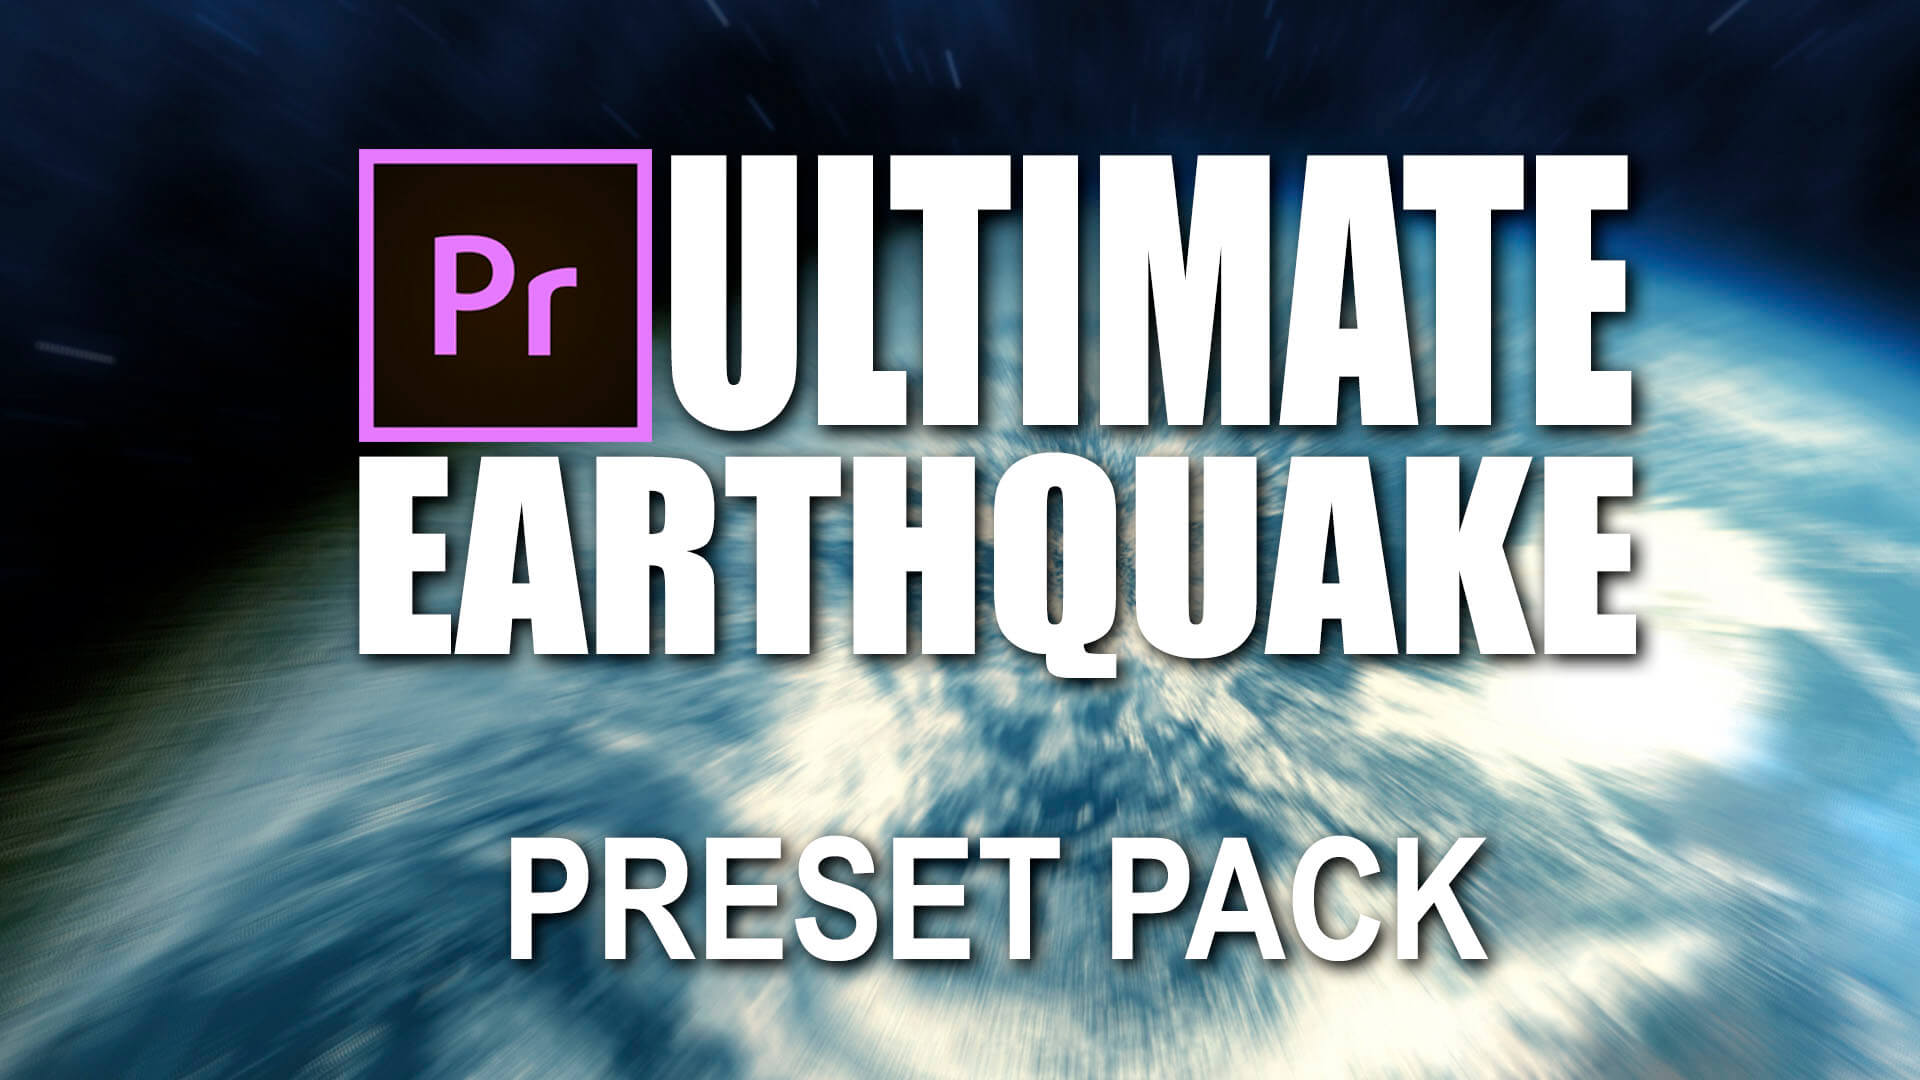 Earthquake Preset Pack Premiere Pro